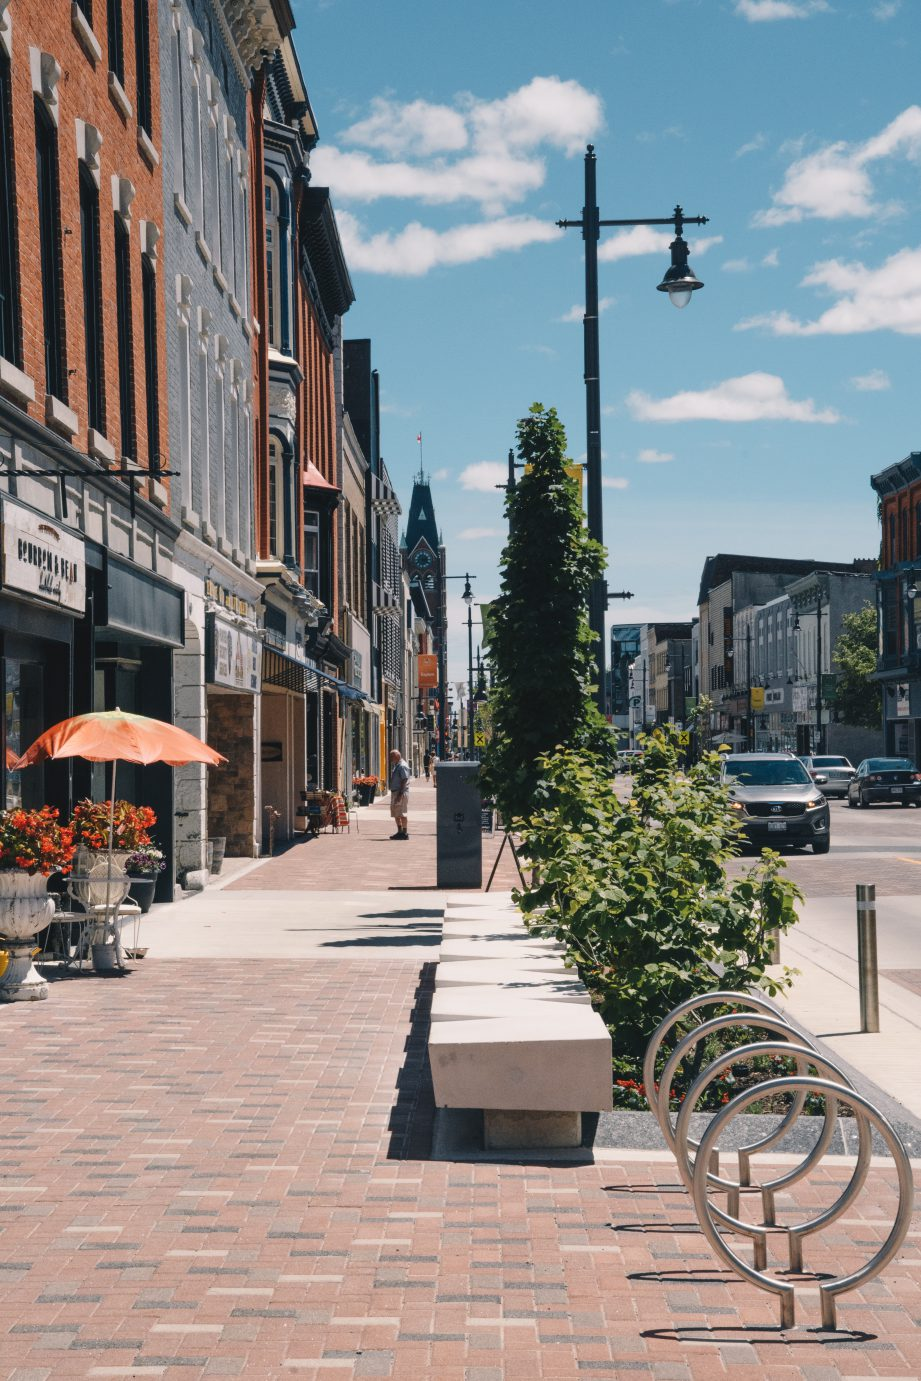 Downtown Belleville with historic buildings lining the street.